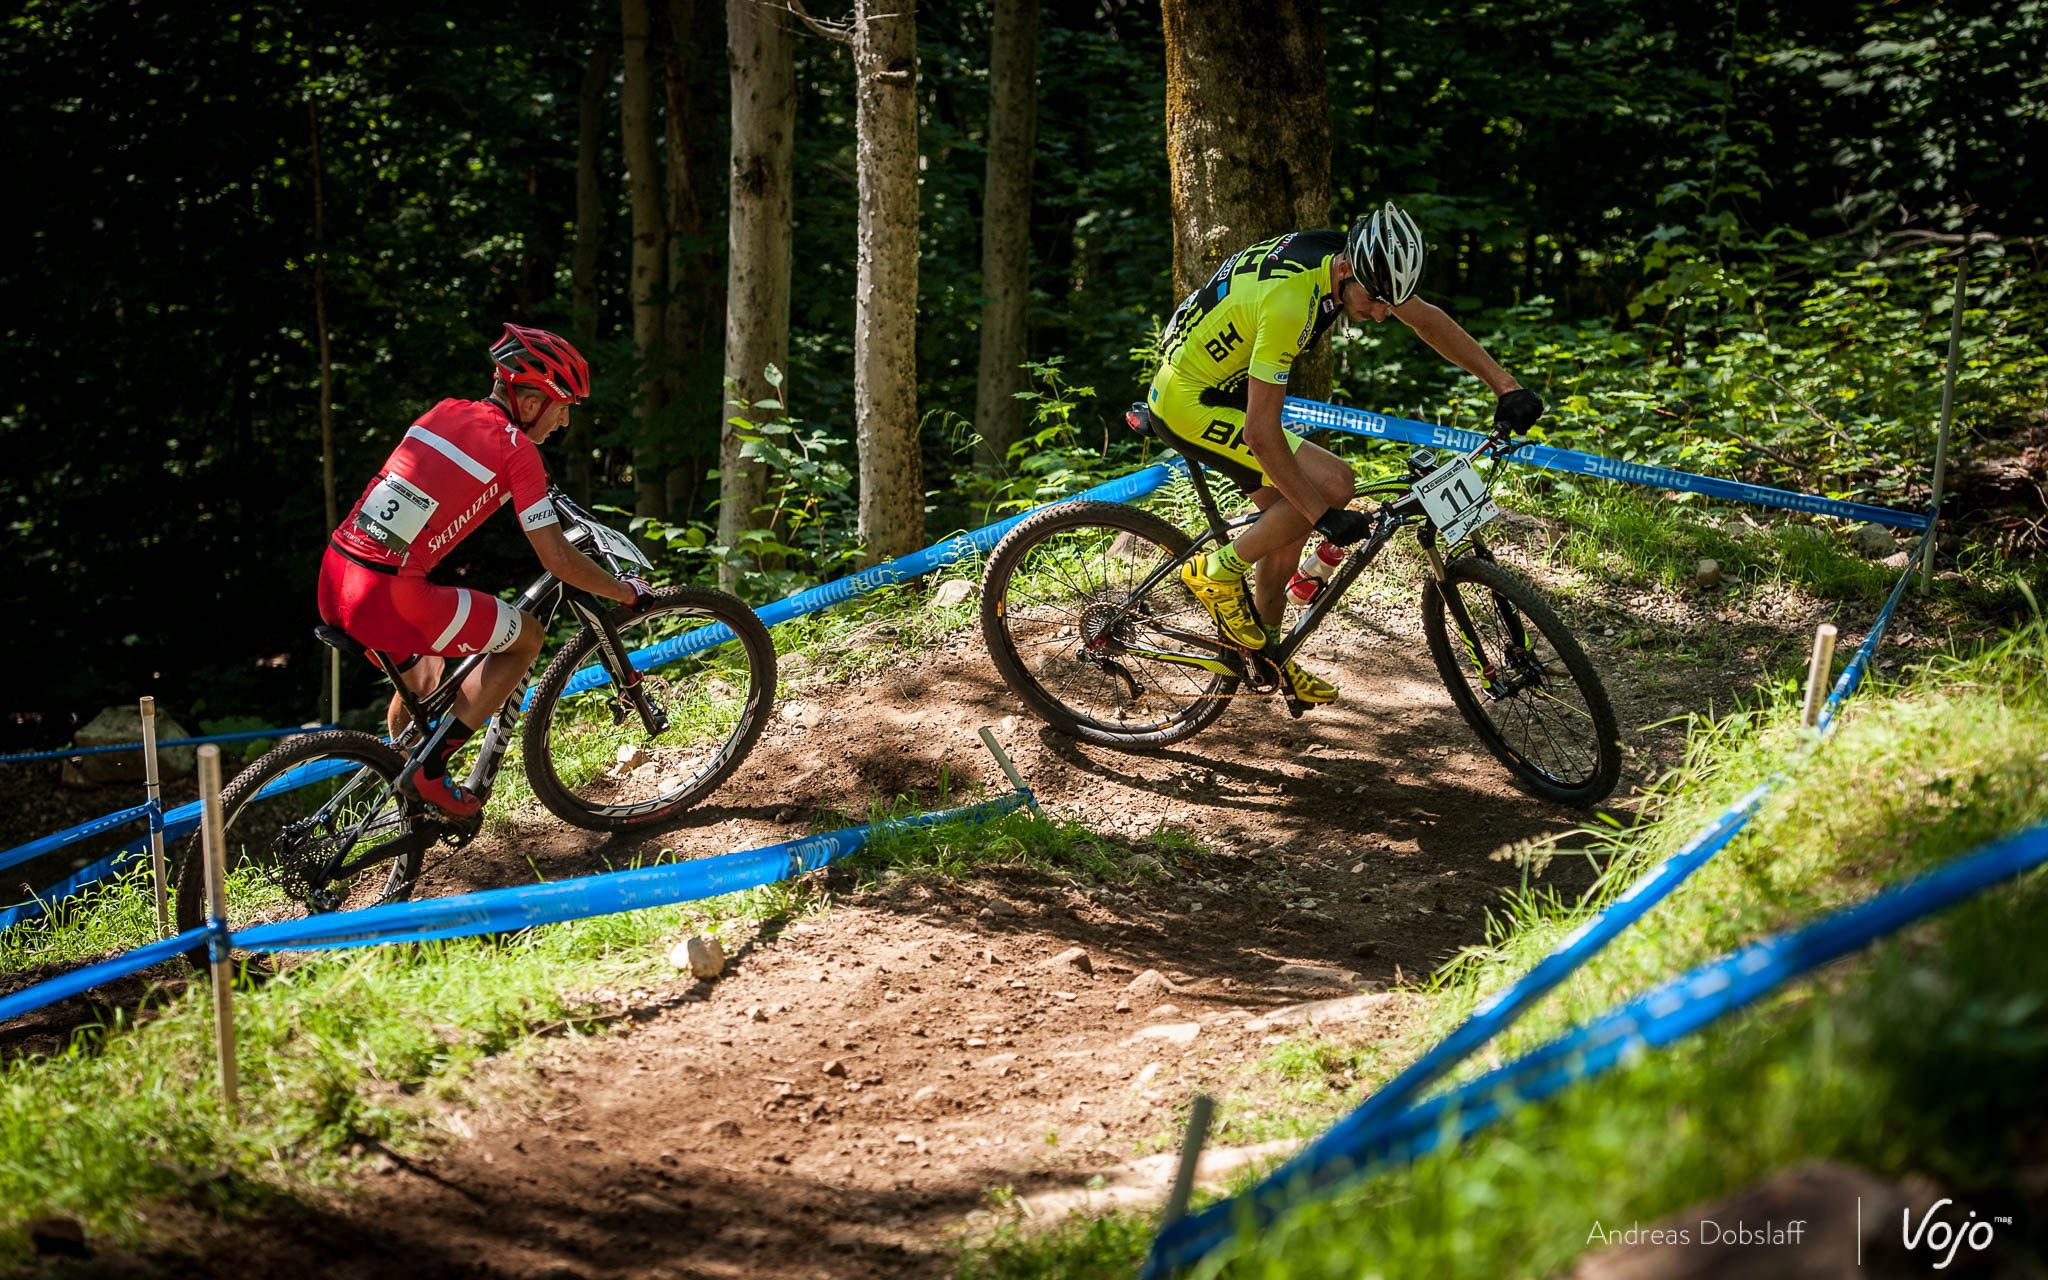 World_Cup_XC_Mont_Saint_Anne_MSA_2015_Carod_Copyright_ADobslaff_VojoMag-6